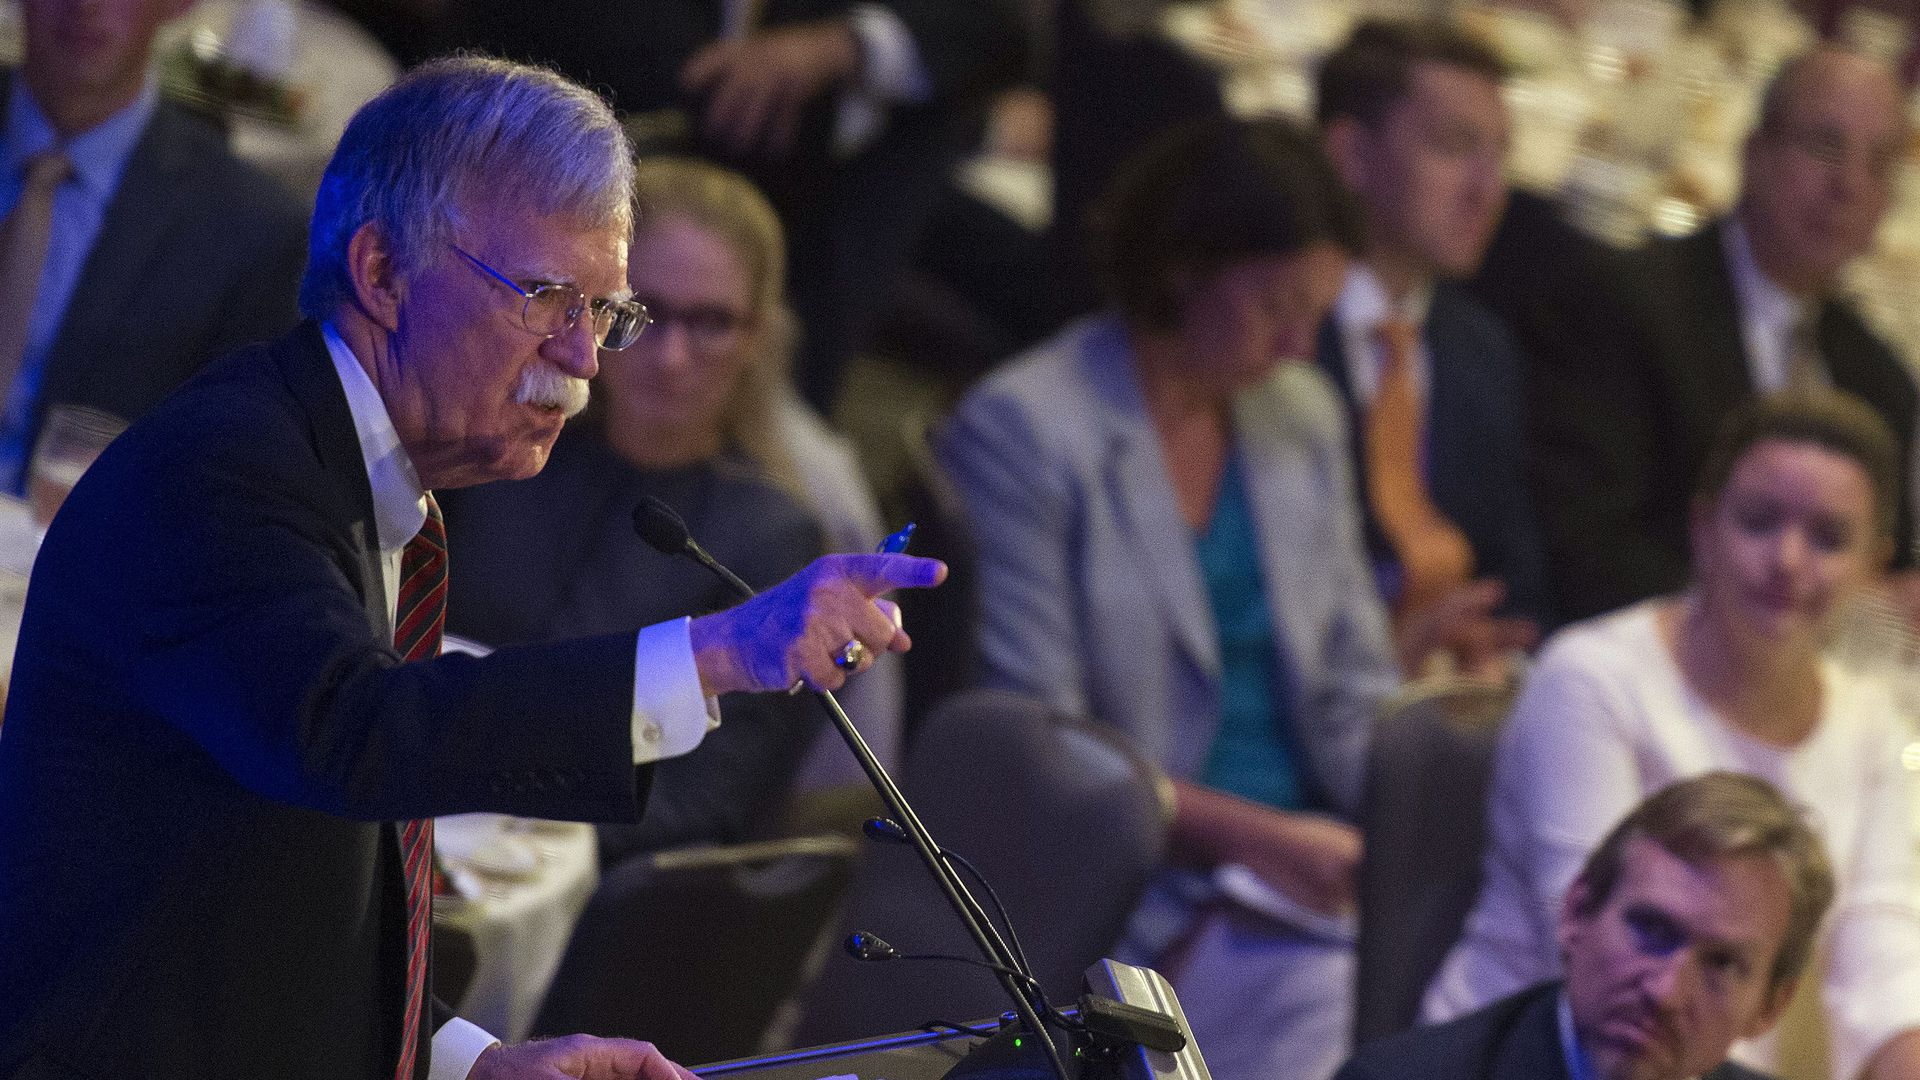 US National Security Advisor, John Bolton, speaks to the Federalist Society in Washington DC